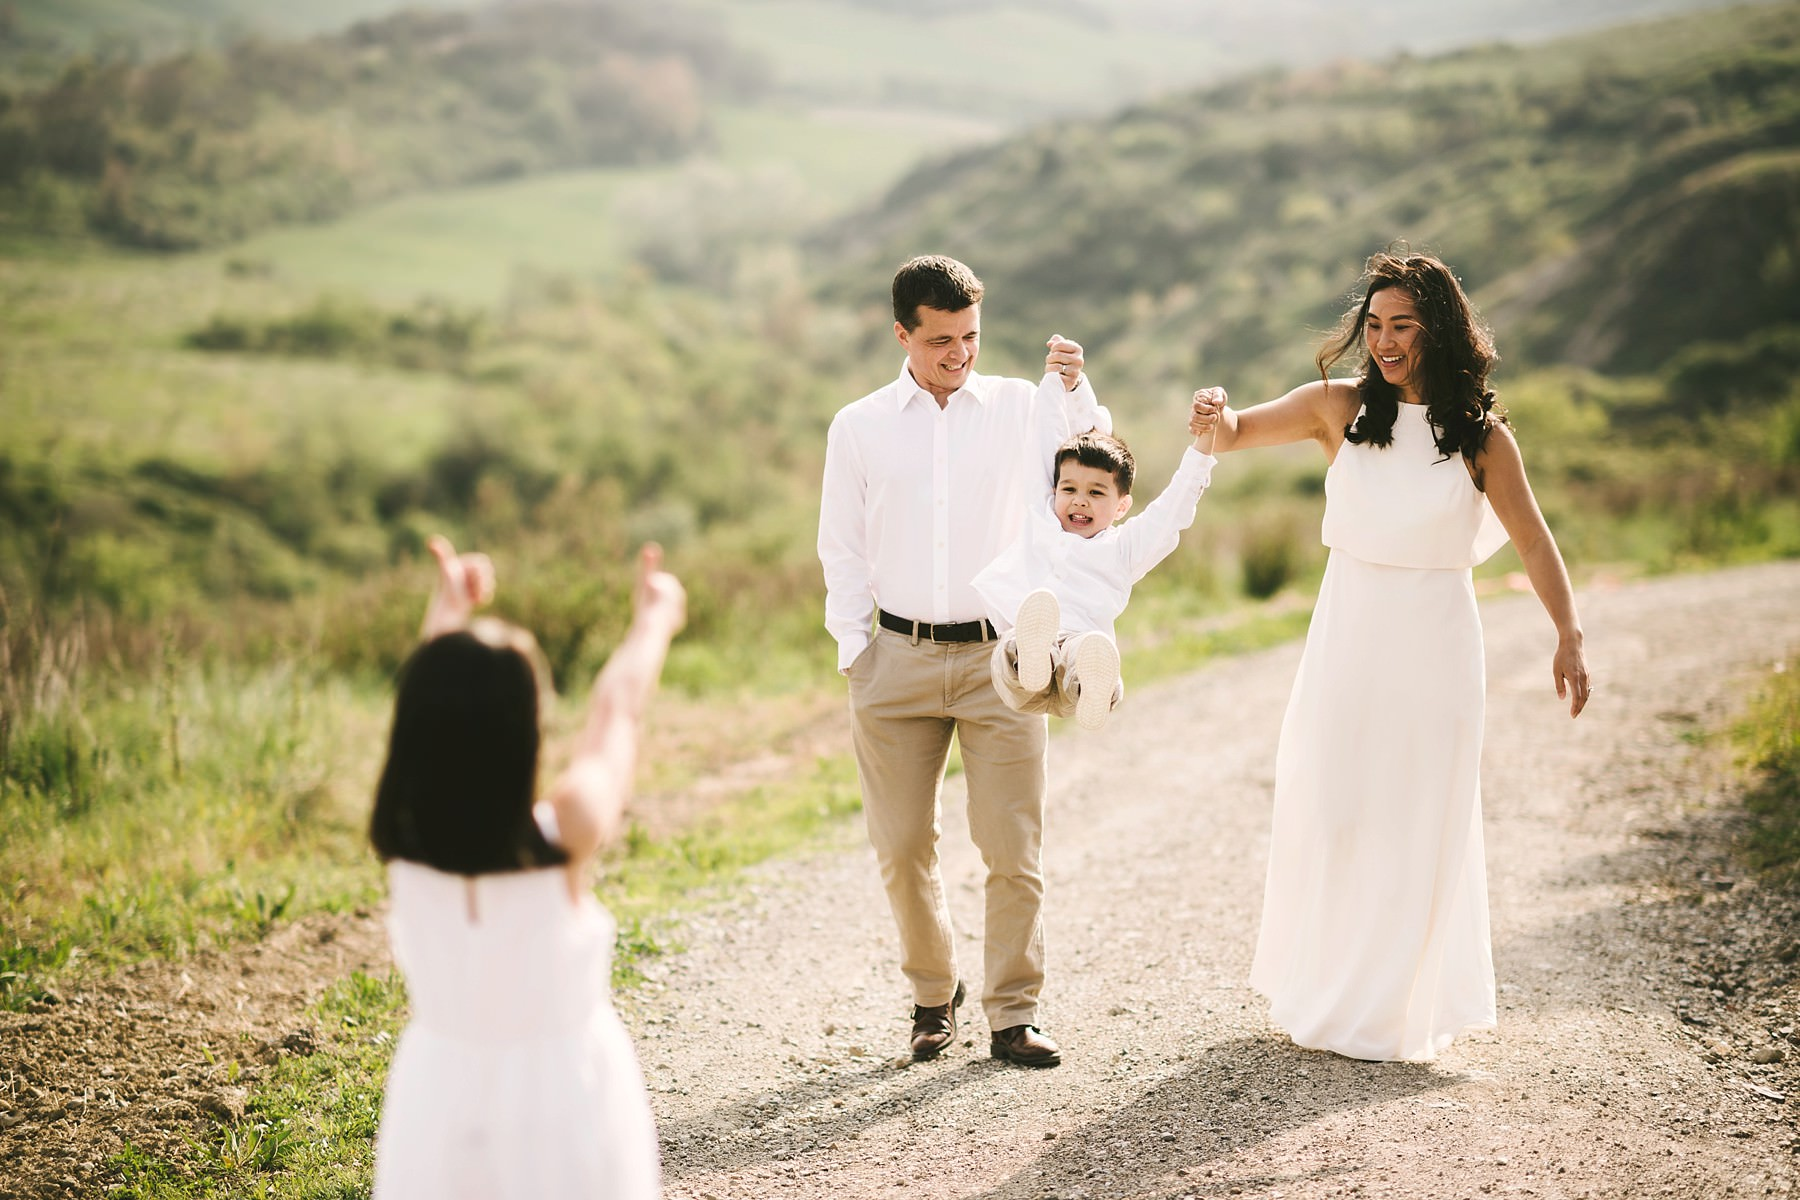 Exciting family photo shoot in Tuscany countryside during a family anniversary photo shoot